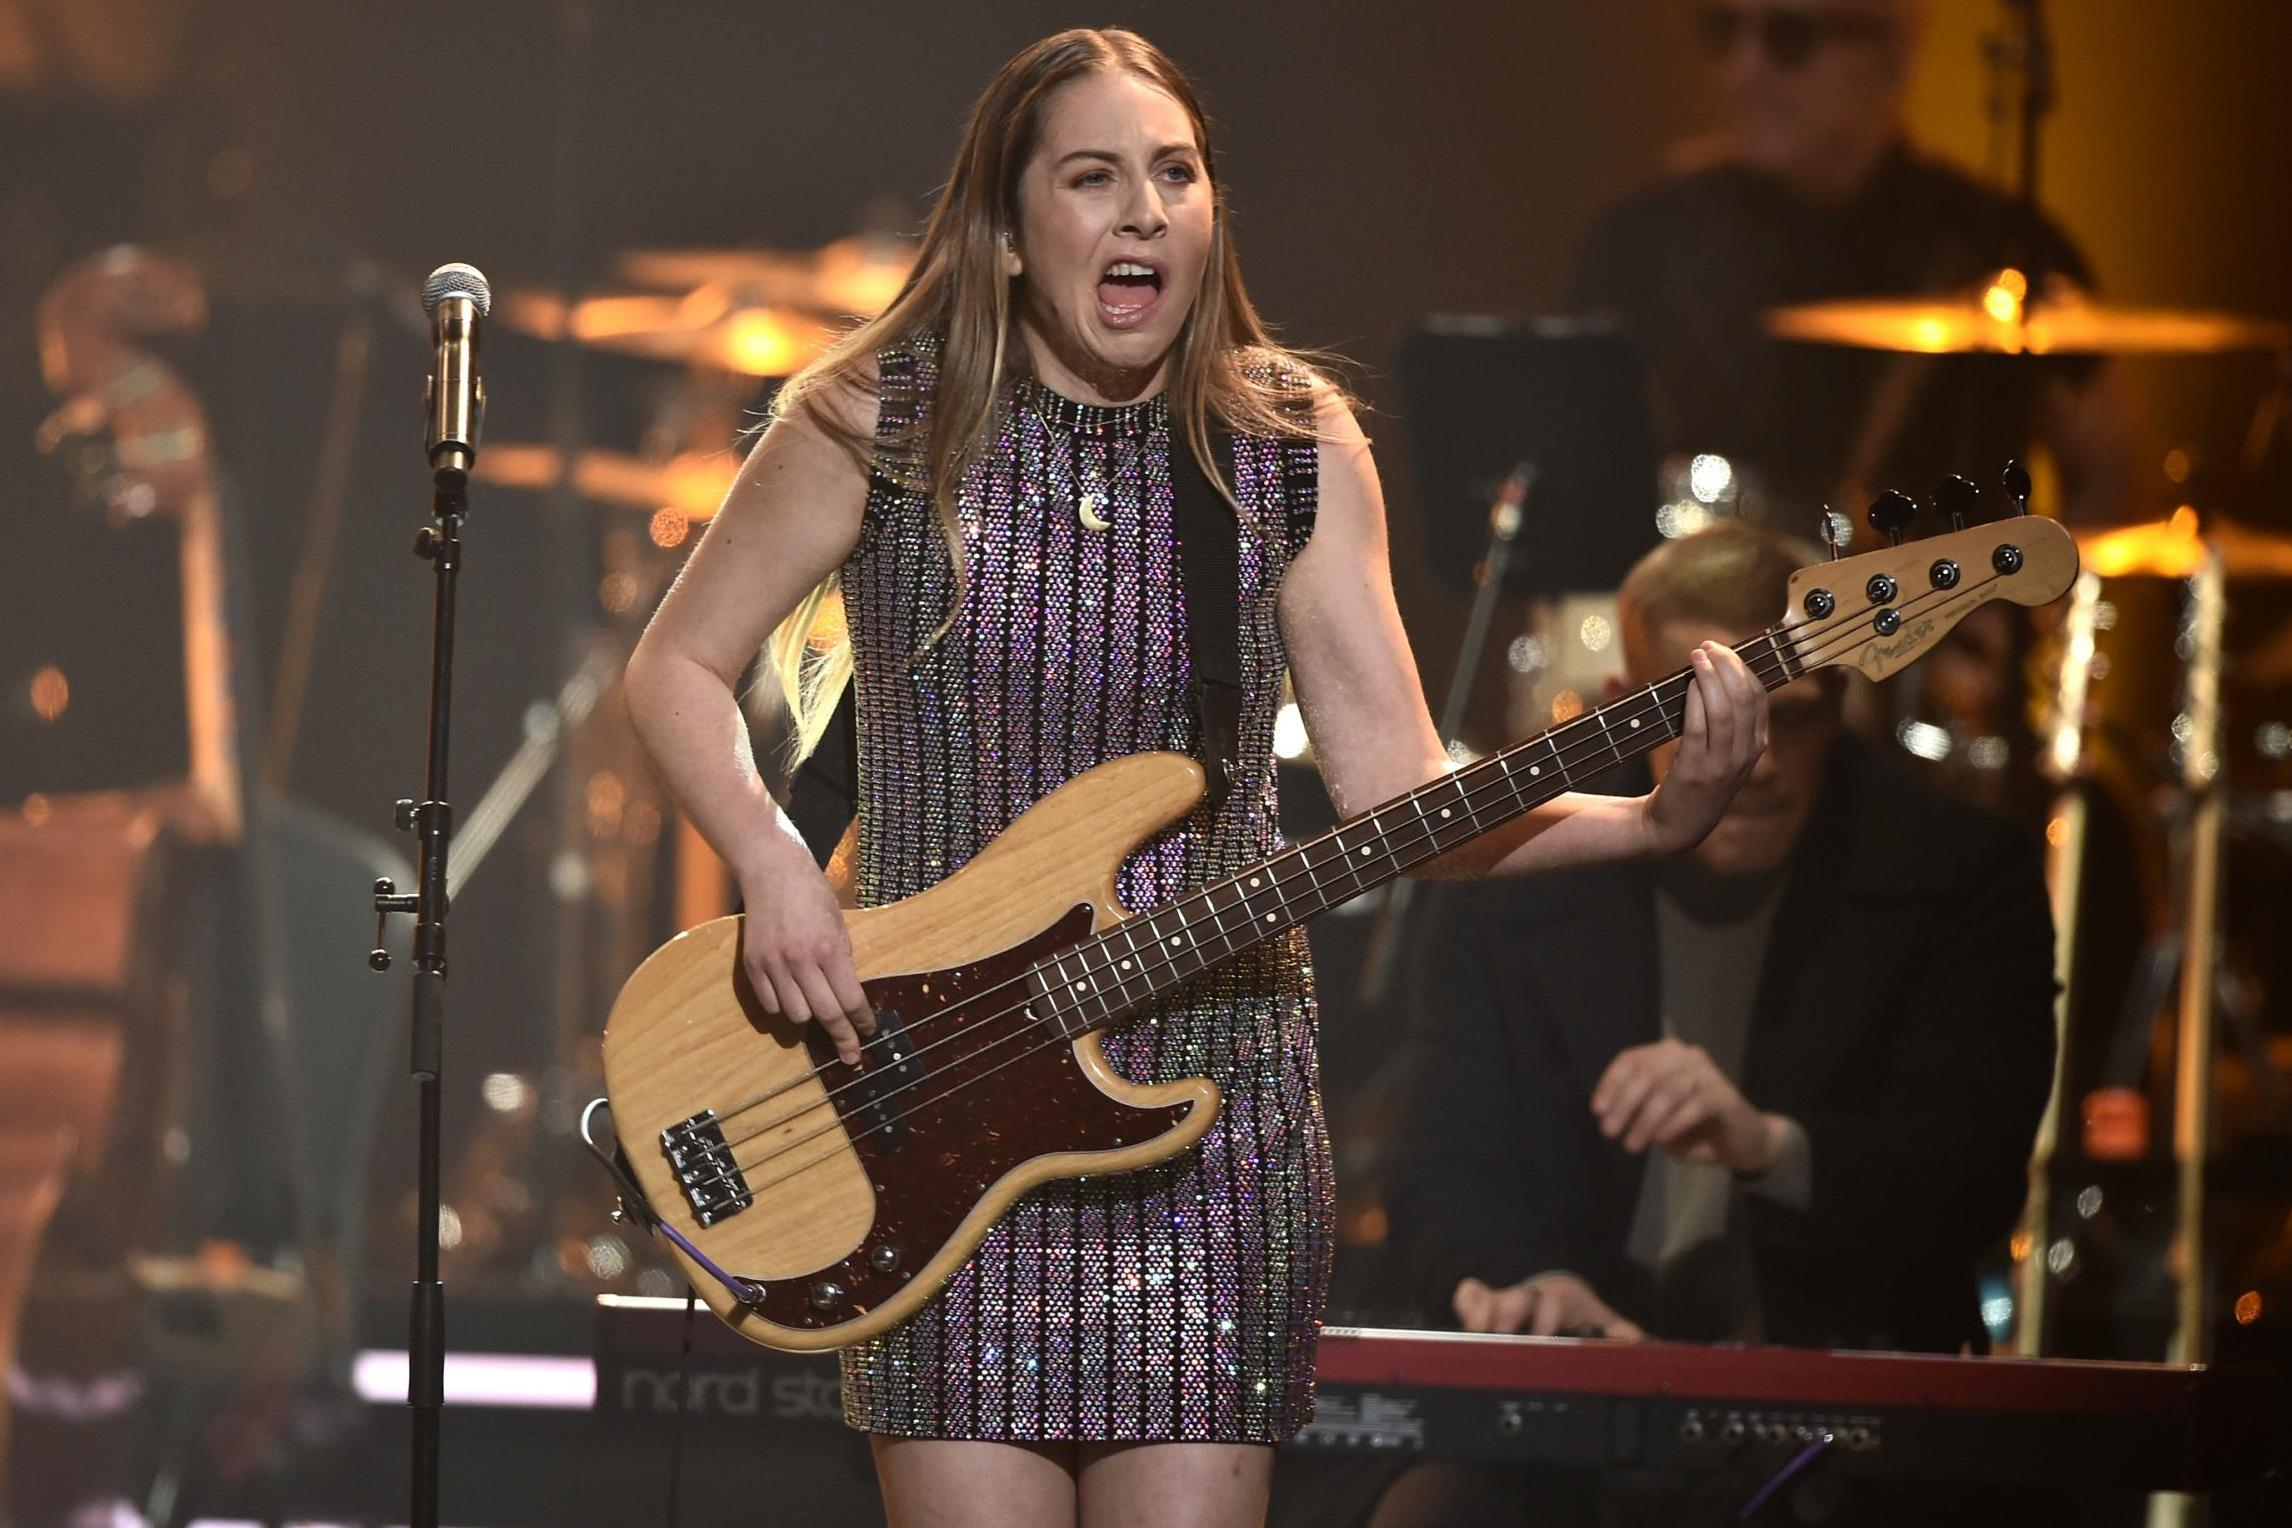 Este Haim calls out sexist bass face memes: 'A veiled way of saying you're ugly'